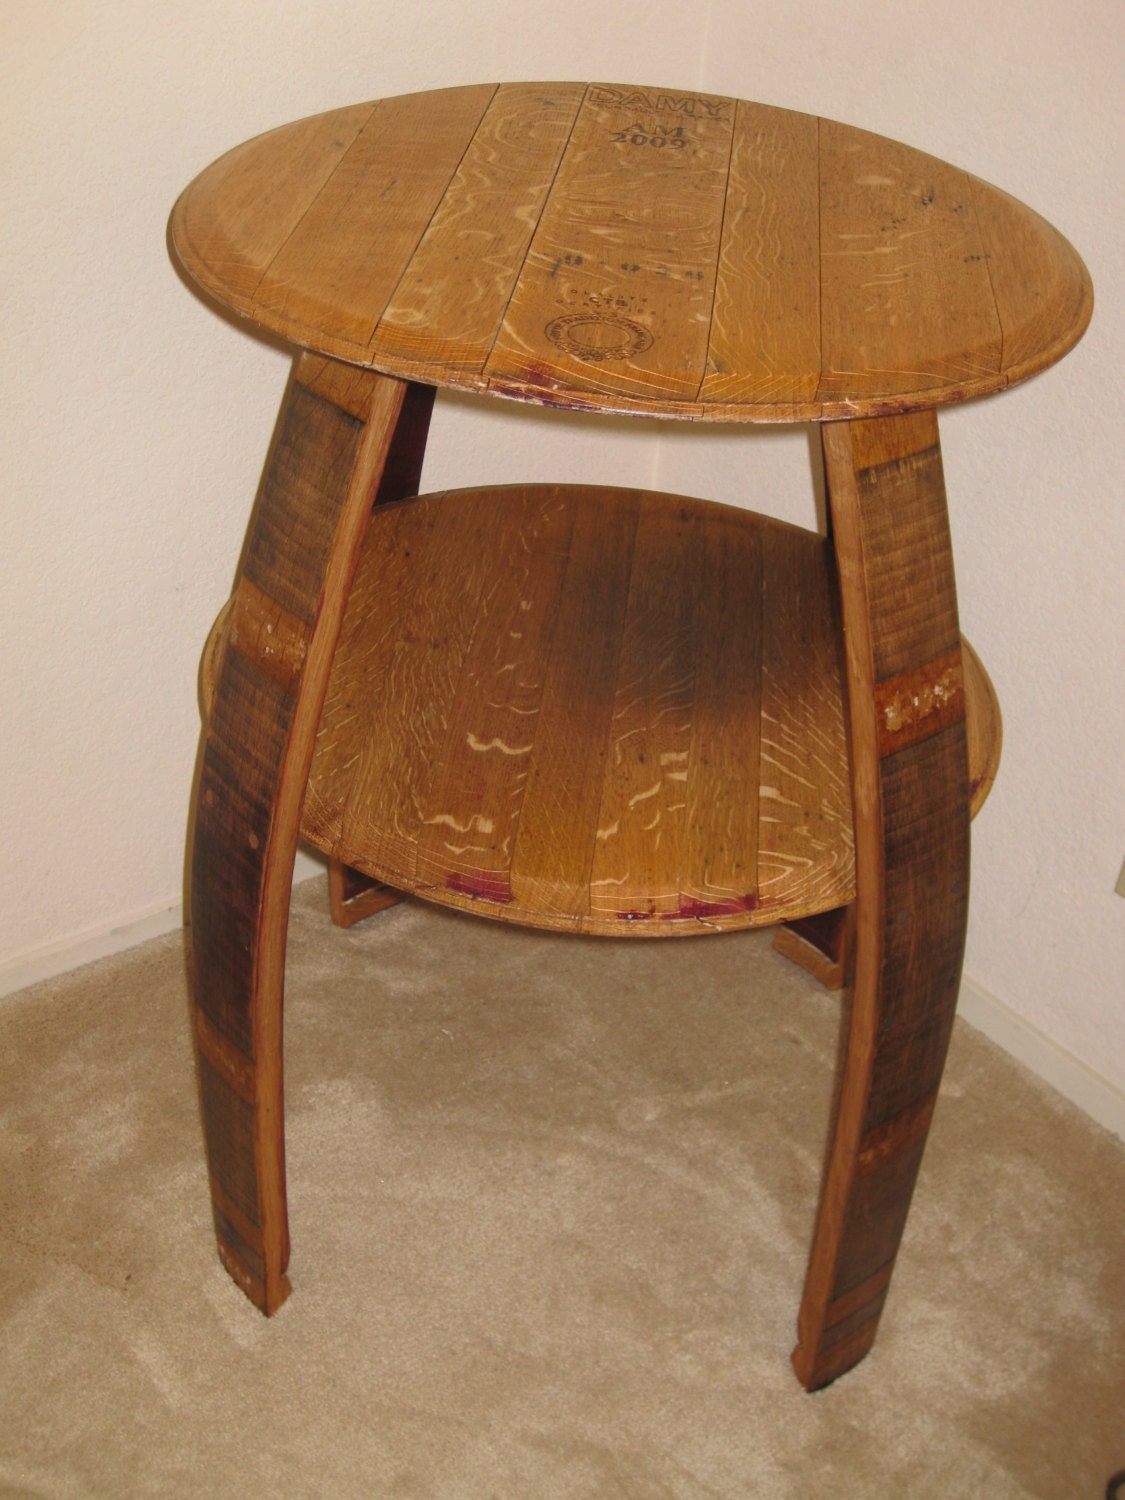 Wine Barrel Double Top Table By TheValleyBarrel On Etsy